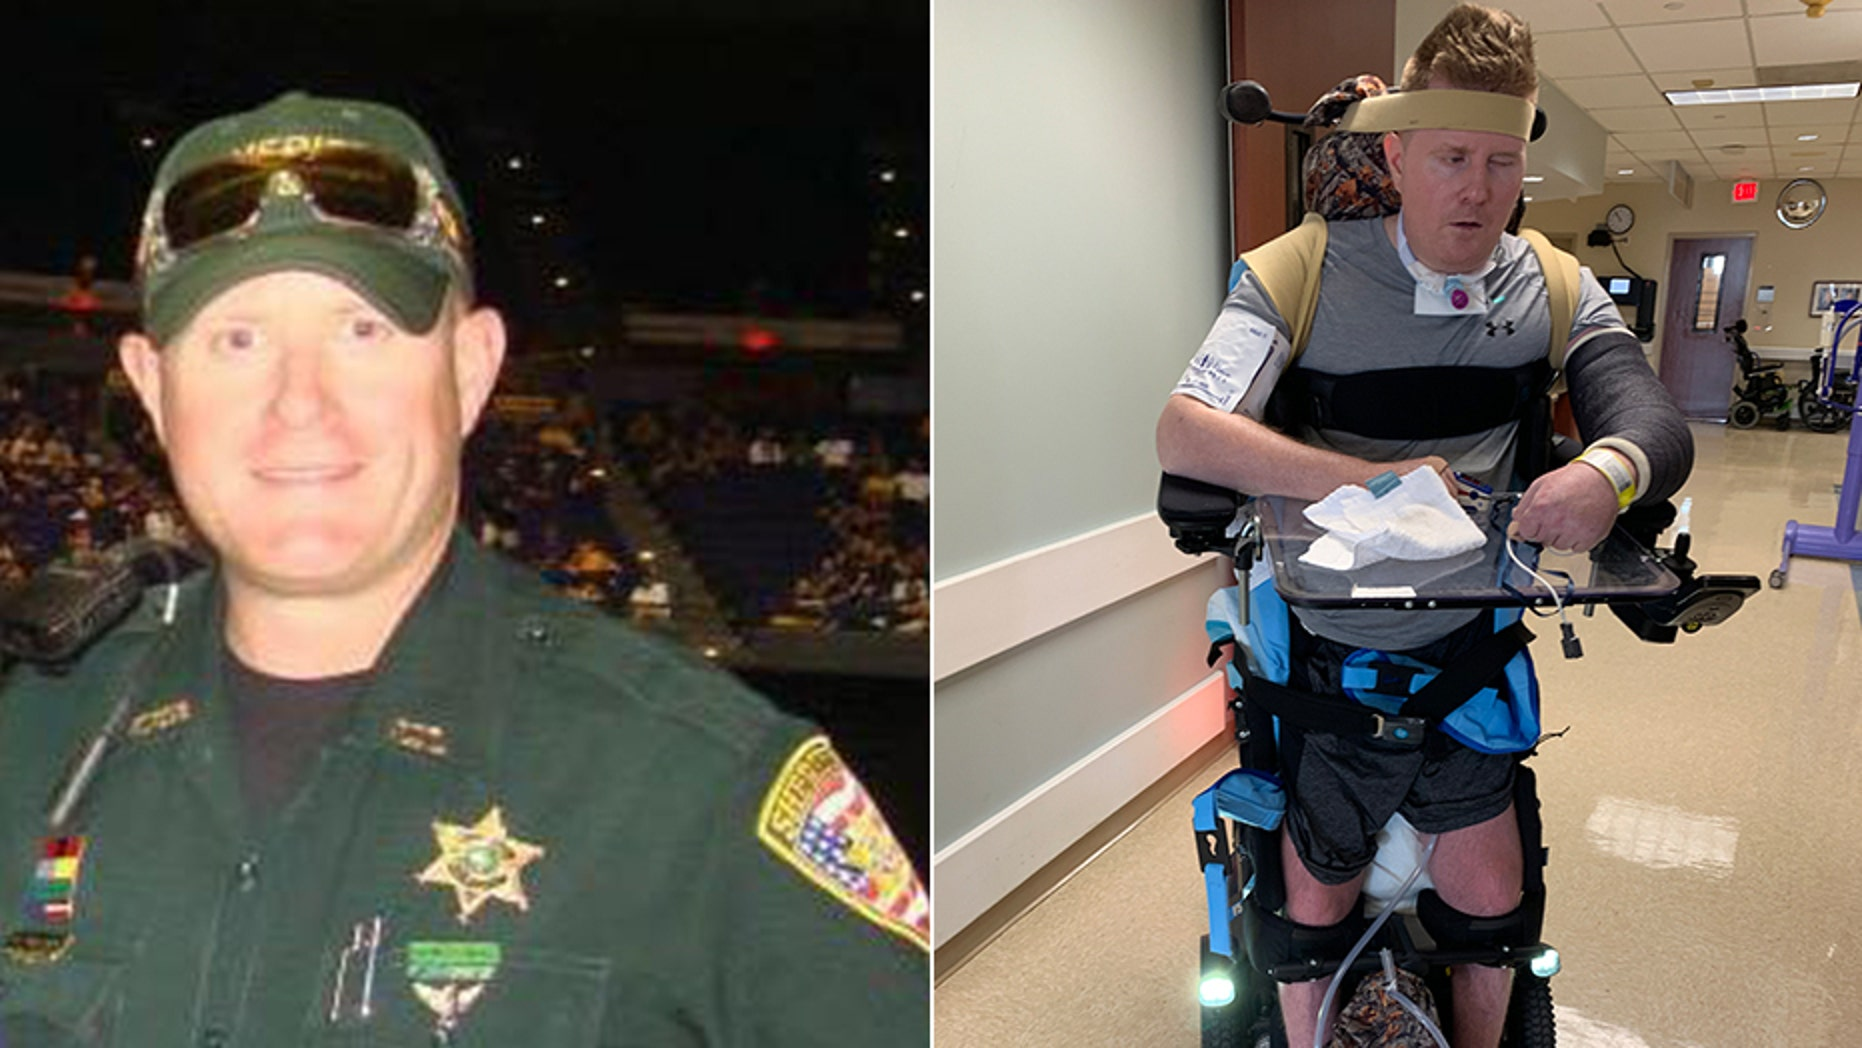 Nick Tullier, a former East Baton Rouge Sheriff's Deputy, has been battling injuries for more than two years after being targeted in an ambush attack in 2016. His father, James, tells Fox News that getting the treatment his son's medical team is seeking is sometimes more complicated than it should be -- and is adding strain to the recovery process.